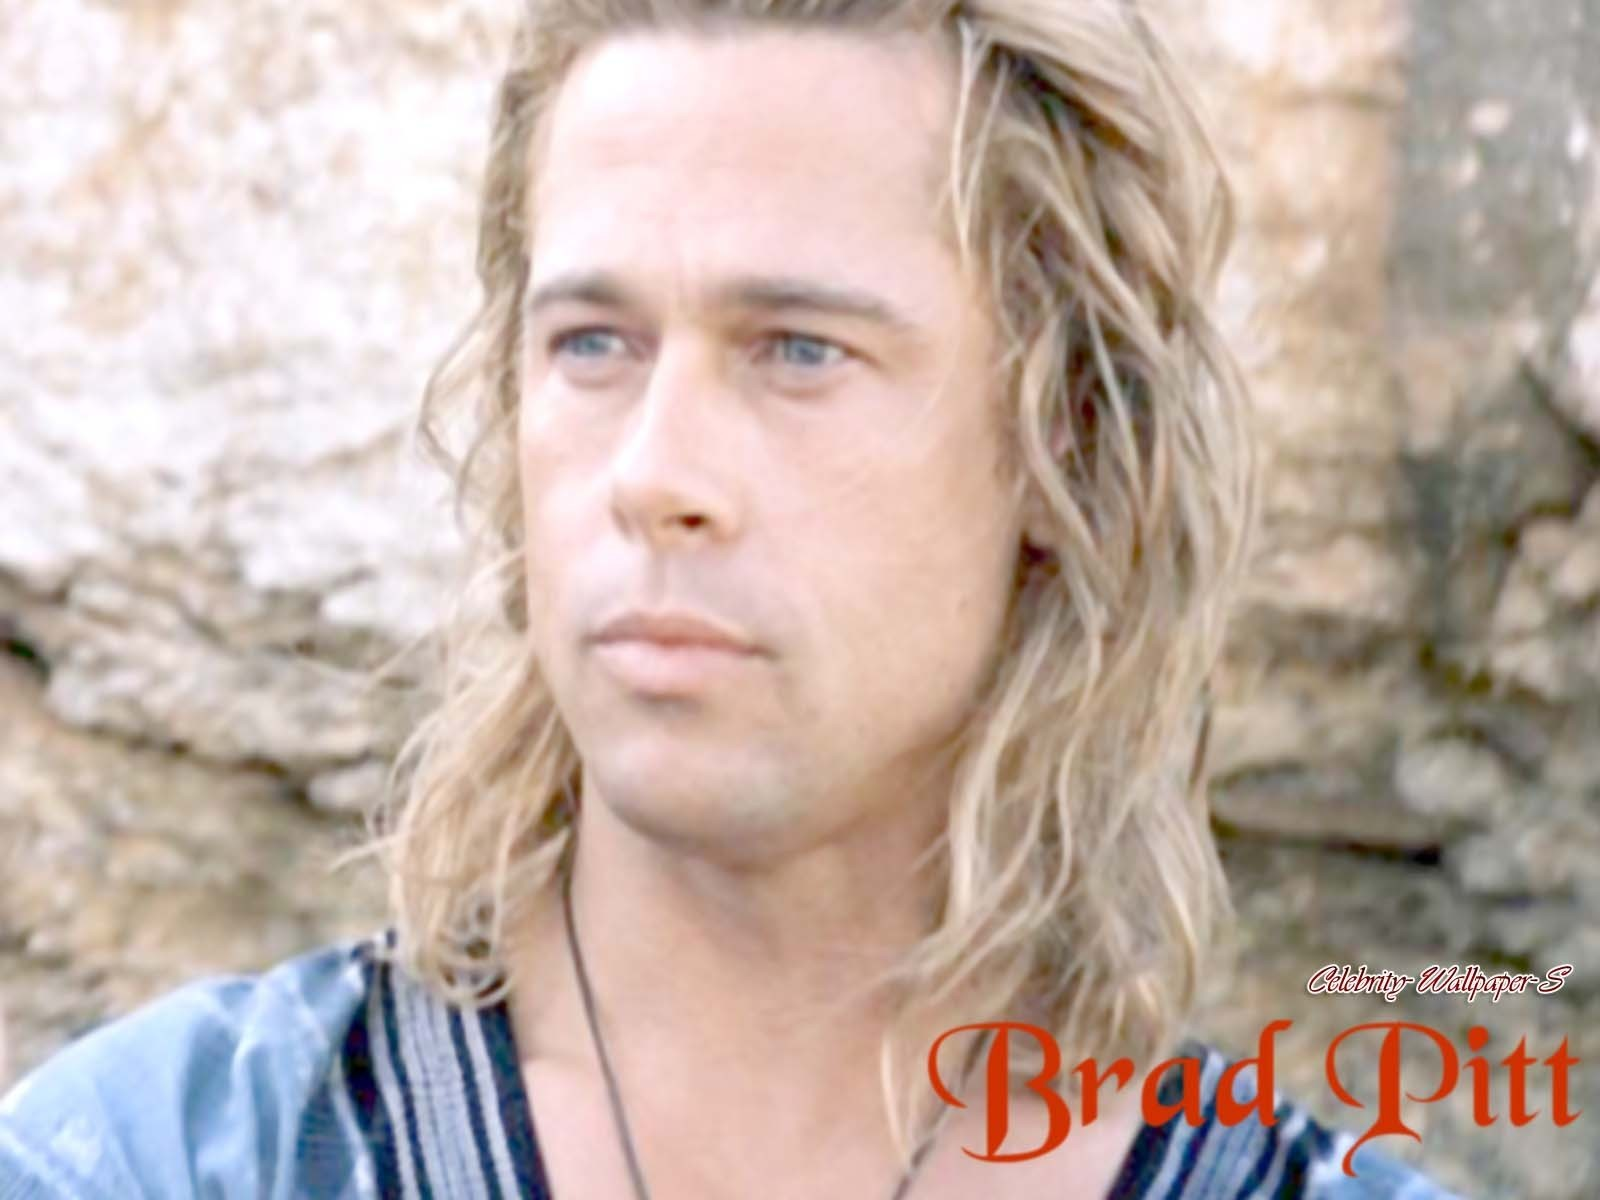 Brad Pitt Hd Background Wallpaper 49 Thumb